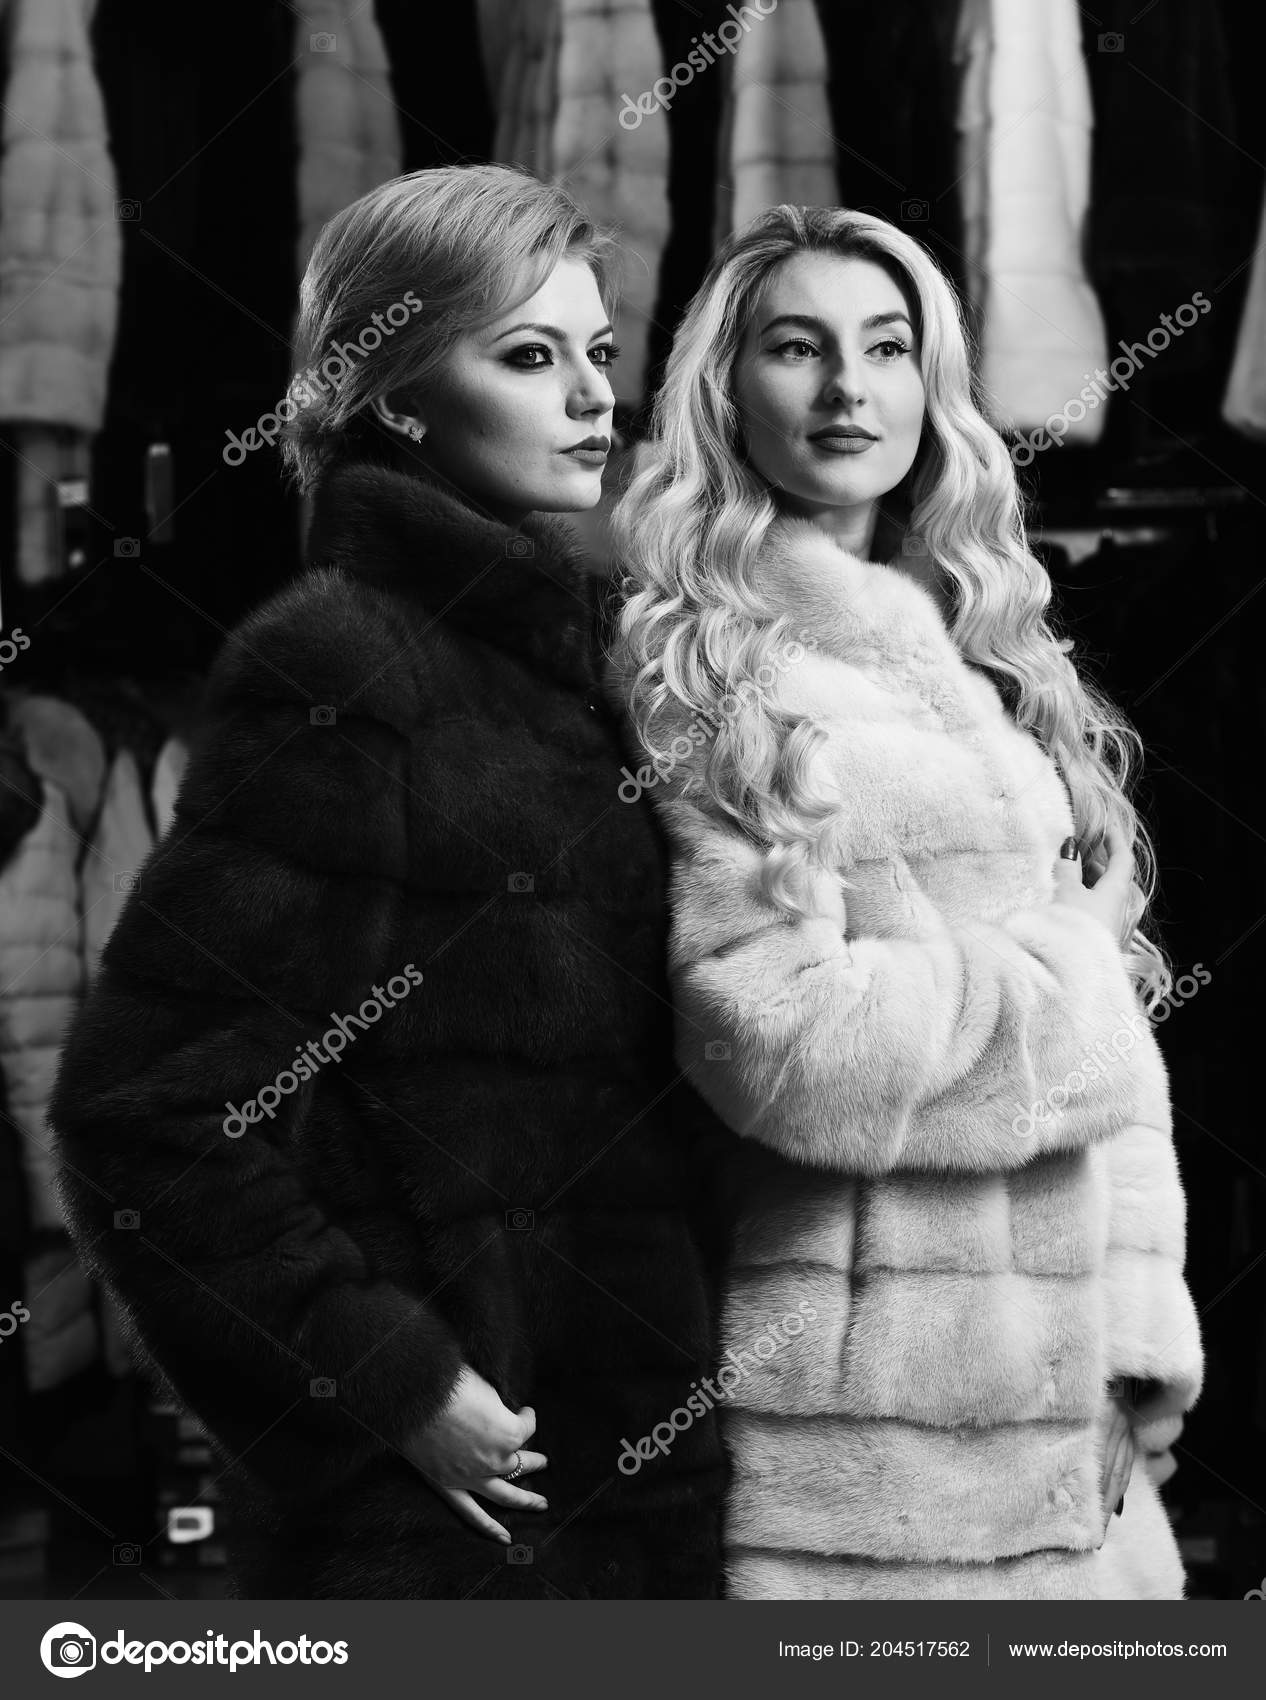 Girls With Strict Faces In Black And White Fur Coats Stock Photo